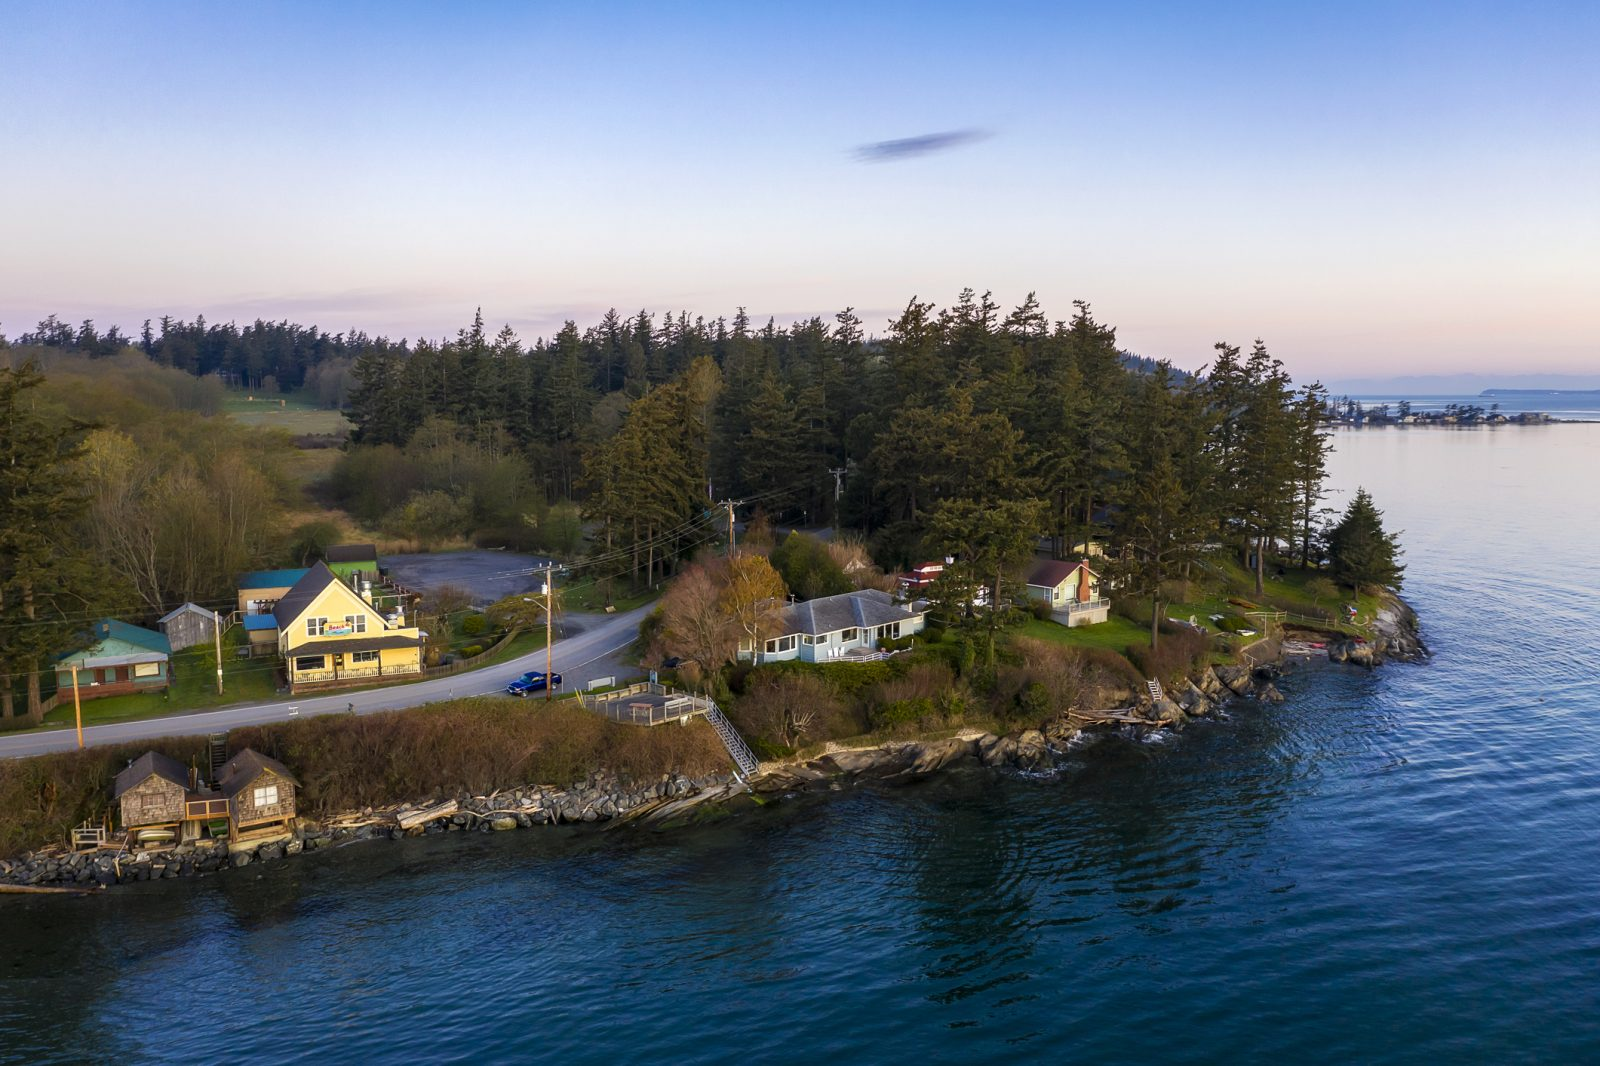 Aerial View of the West Side of Lummi Island During a Beautiful Sunrise.